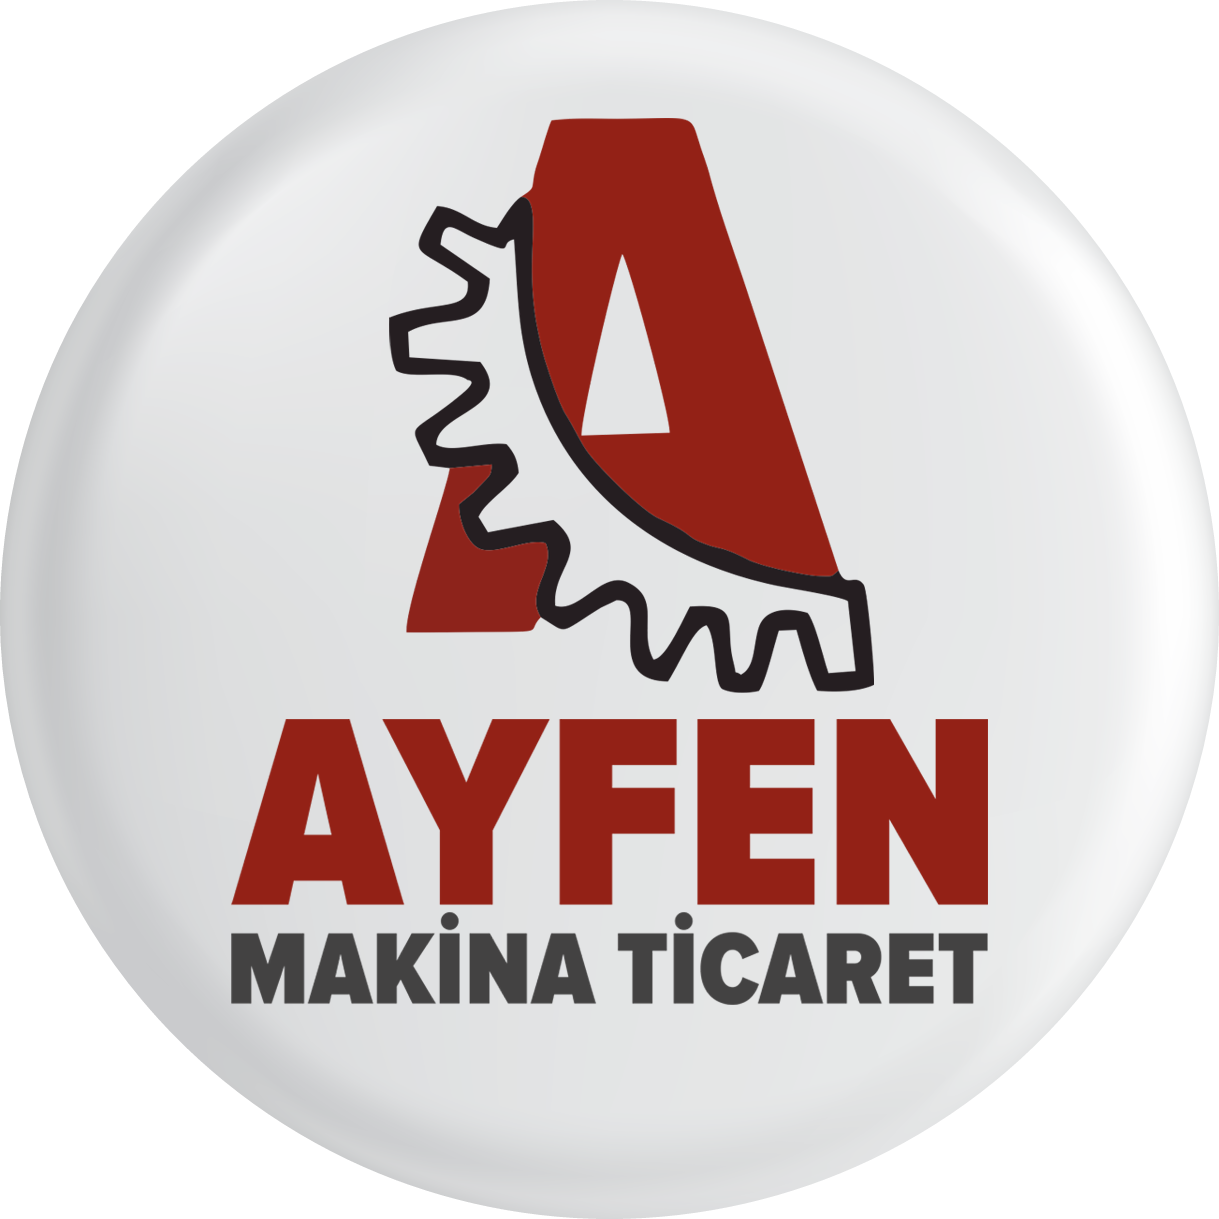 AYFEN MACHINERY